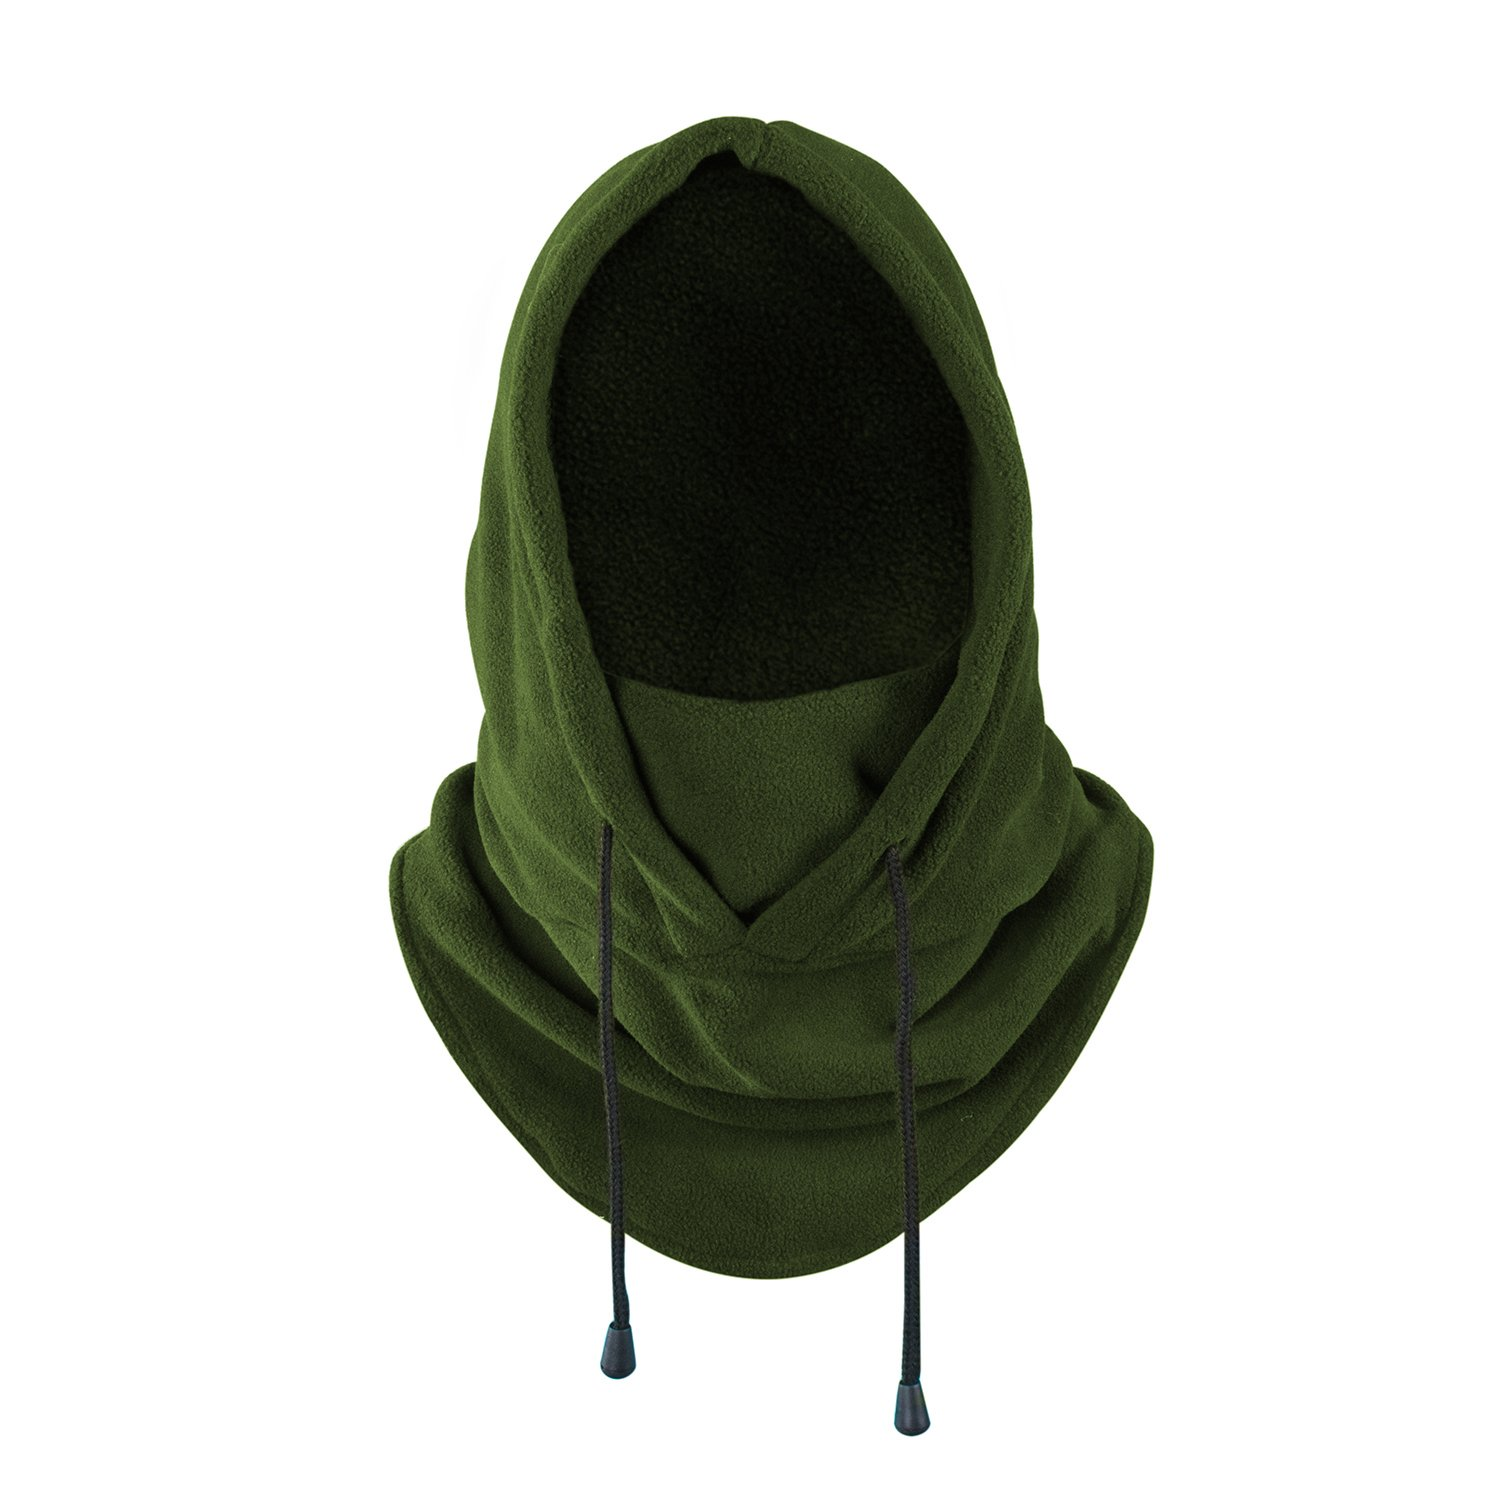 Balaclava Heavyweight Fleece Cold Weather Face and Neck Mask